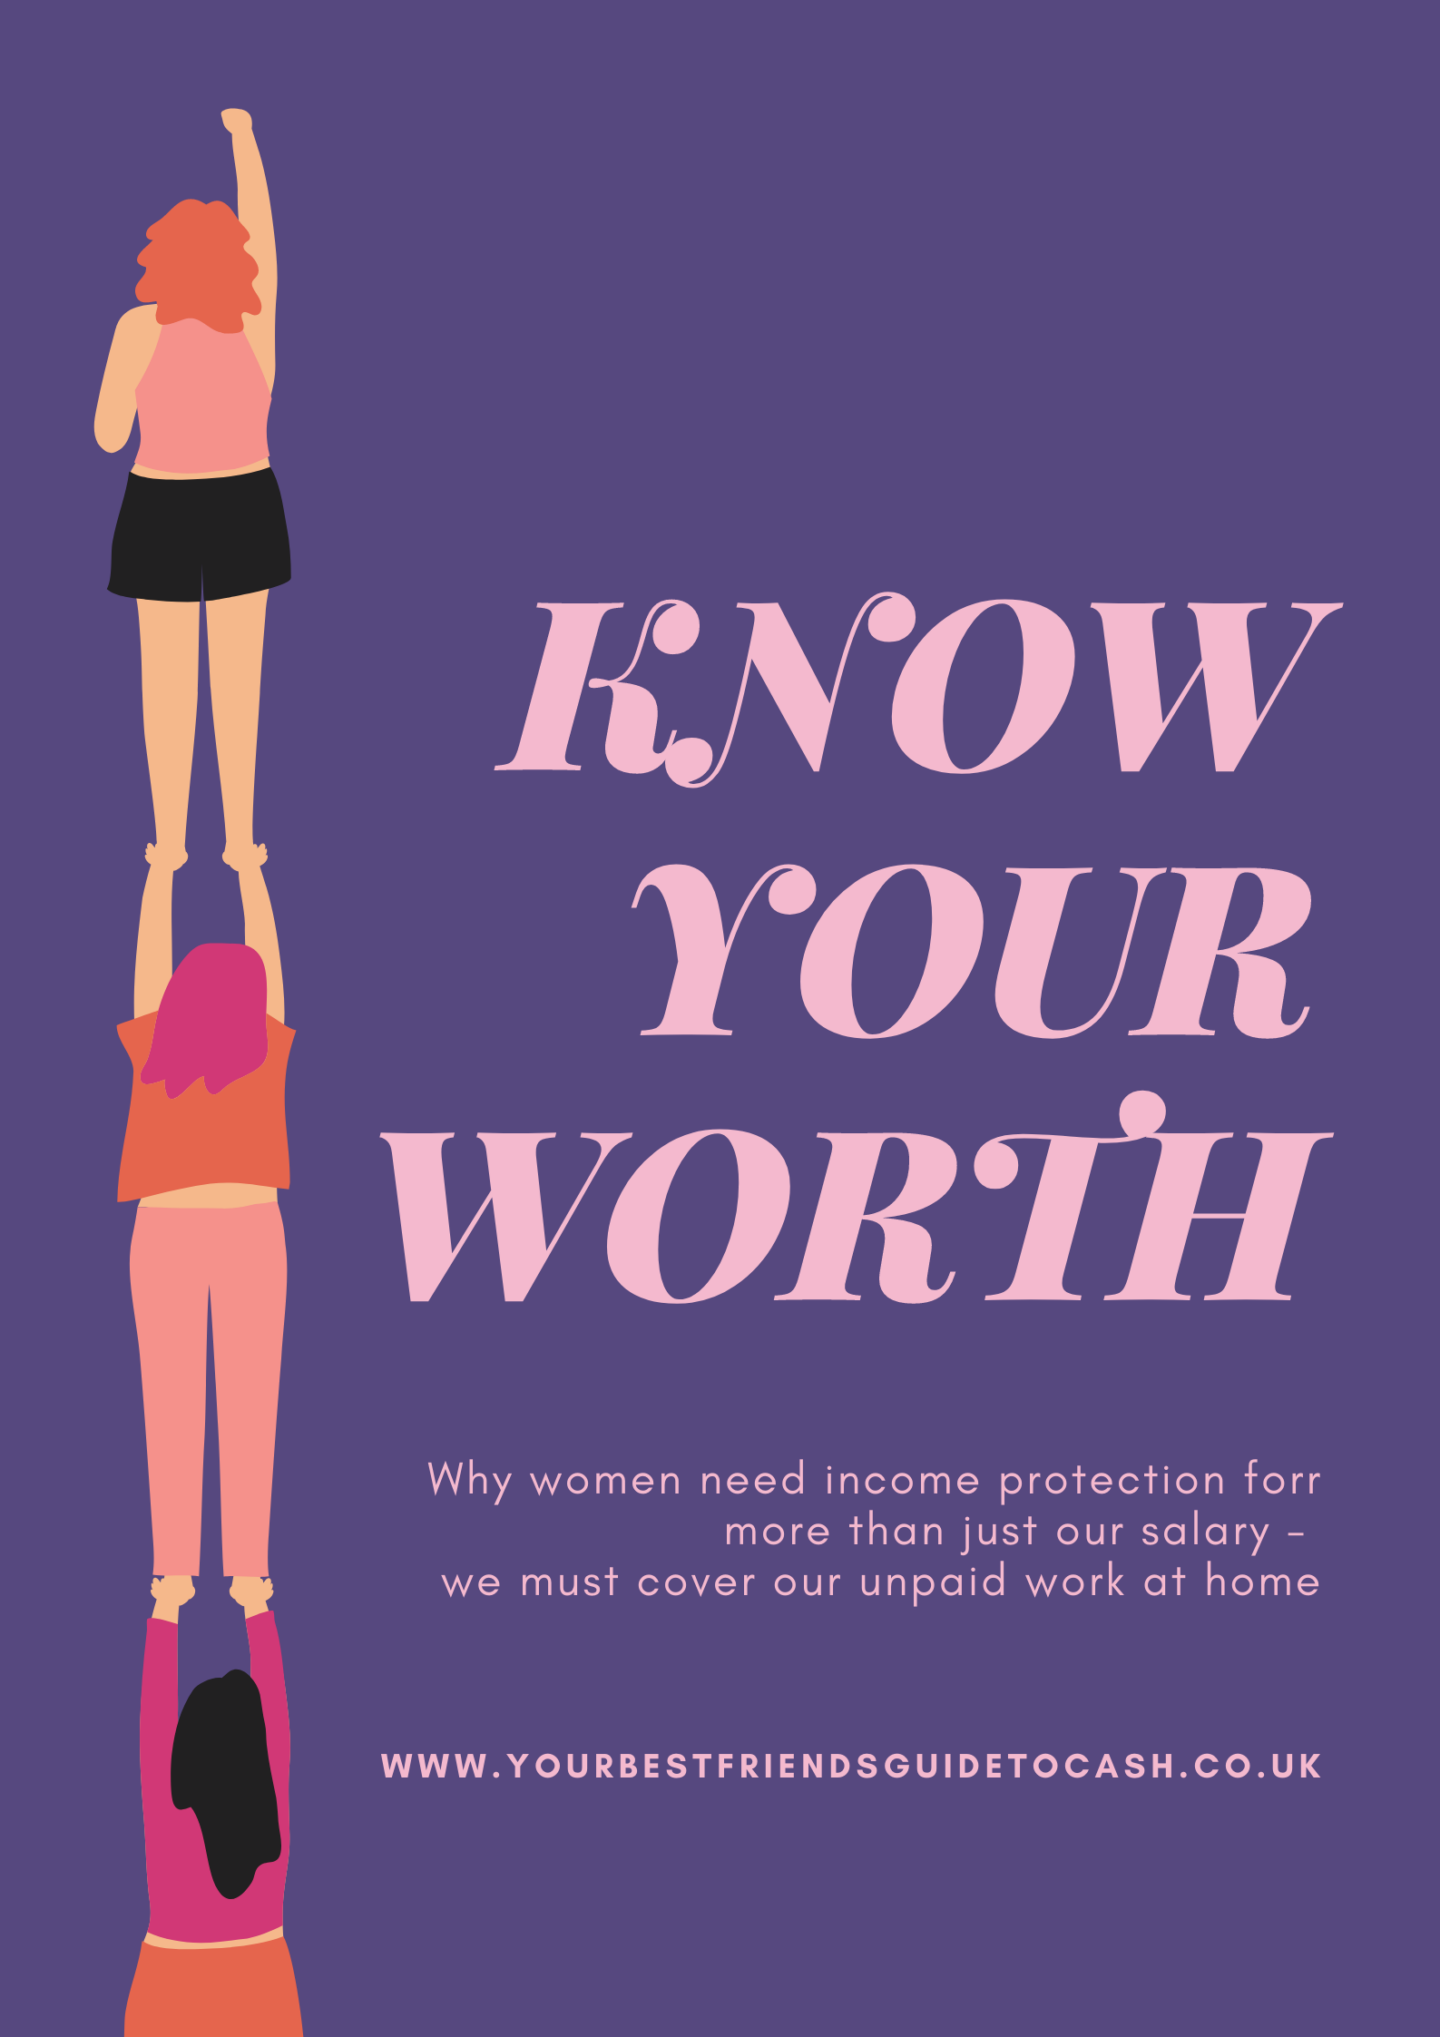 Know your worth: protect your salary and the value of the unpaid work you do at home